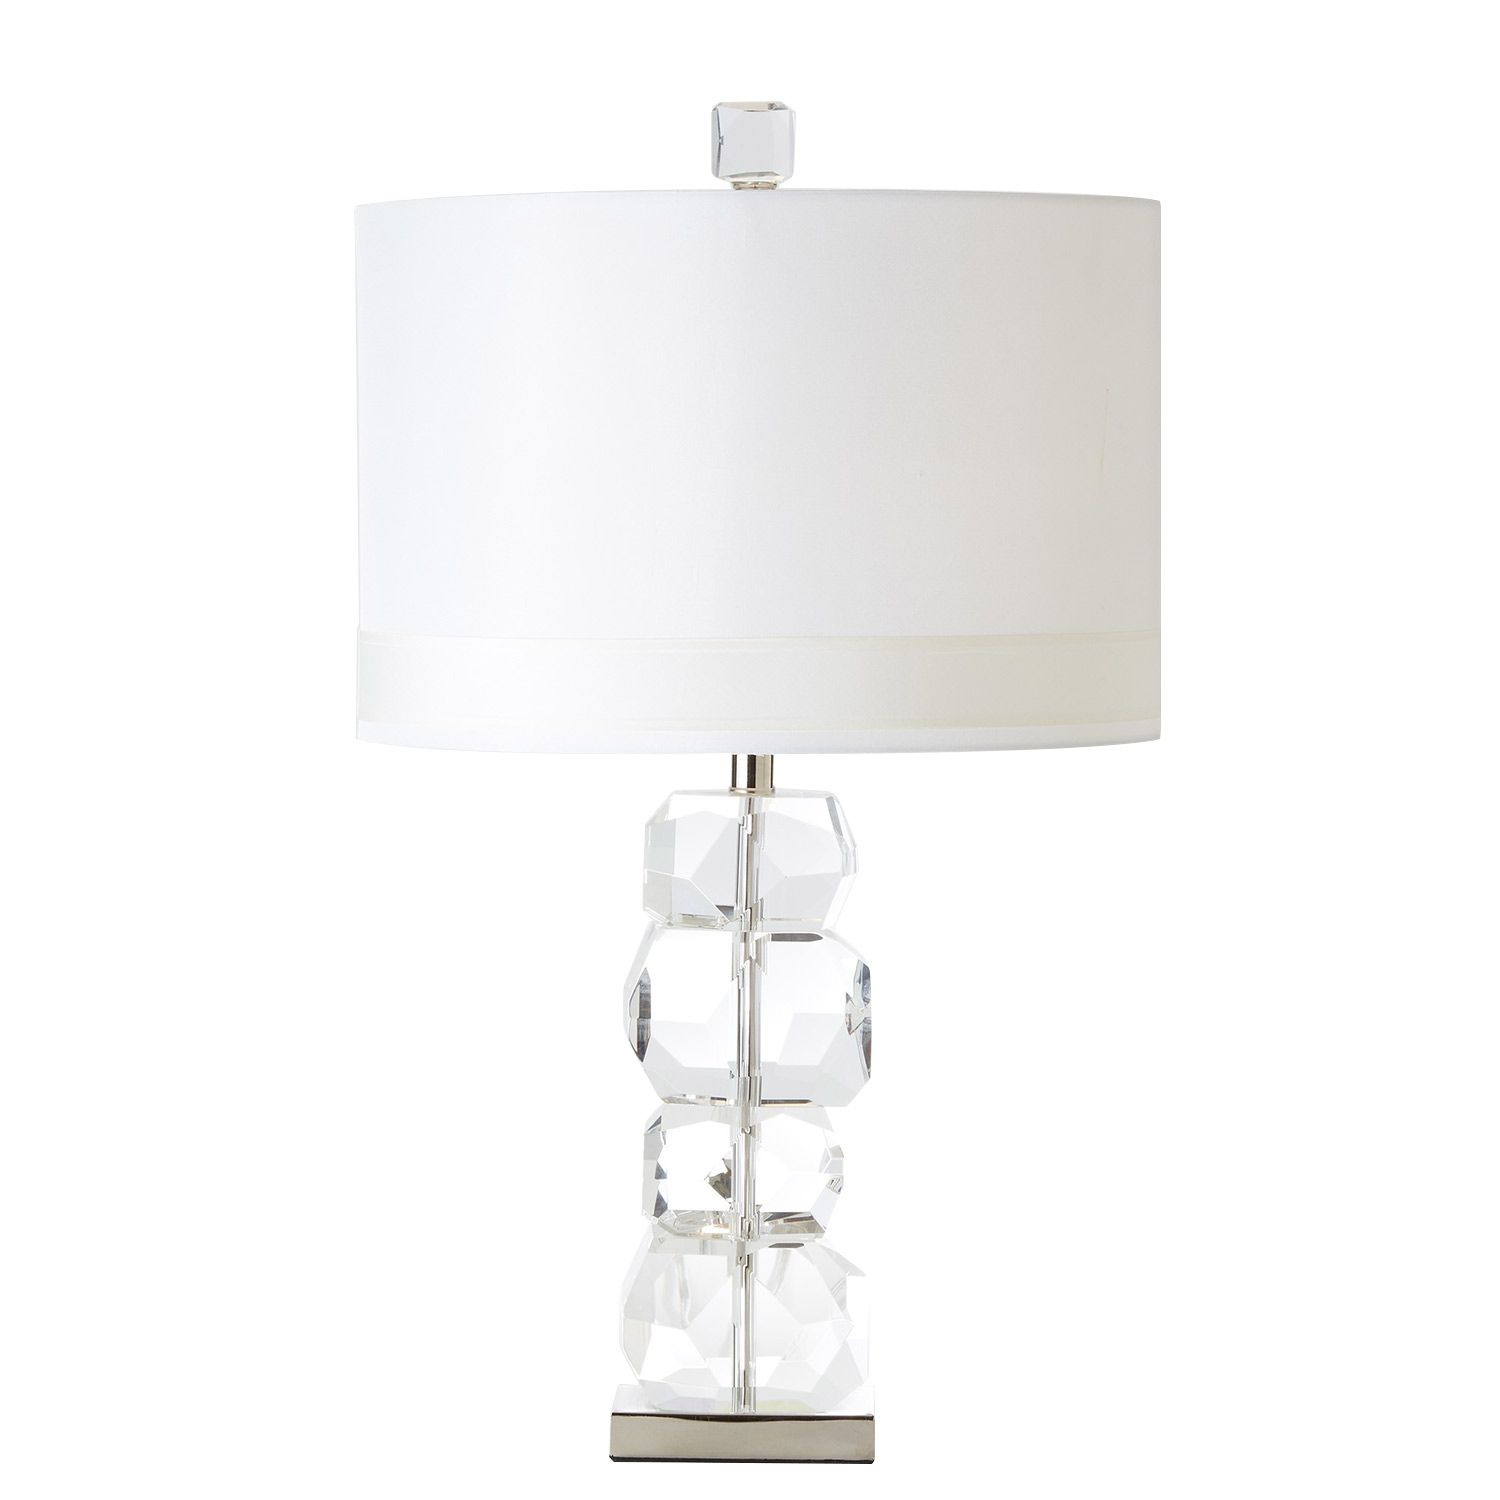 Global views stacked gemstone short table lamp zincdoor zincdoor global views stacked gemstone short table lamp zincdoor aloadofball Gallery